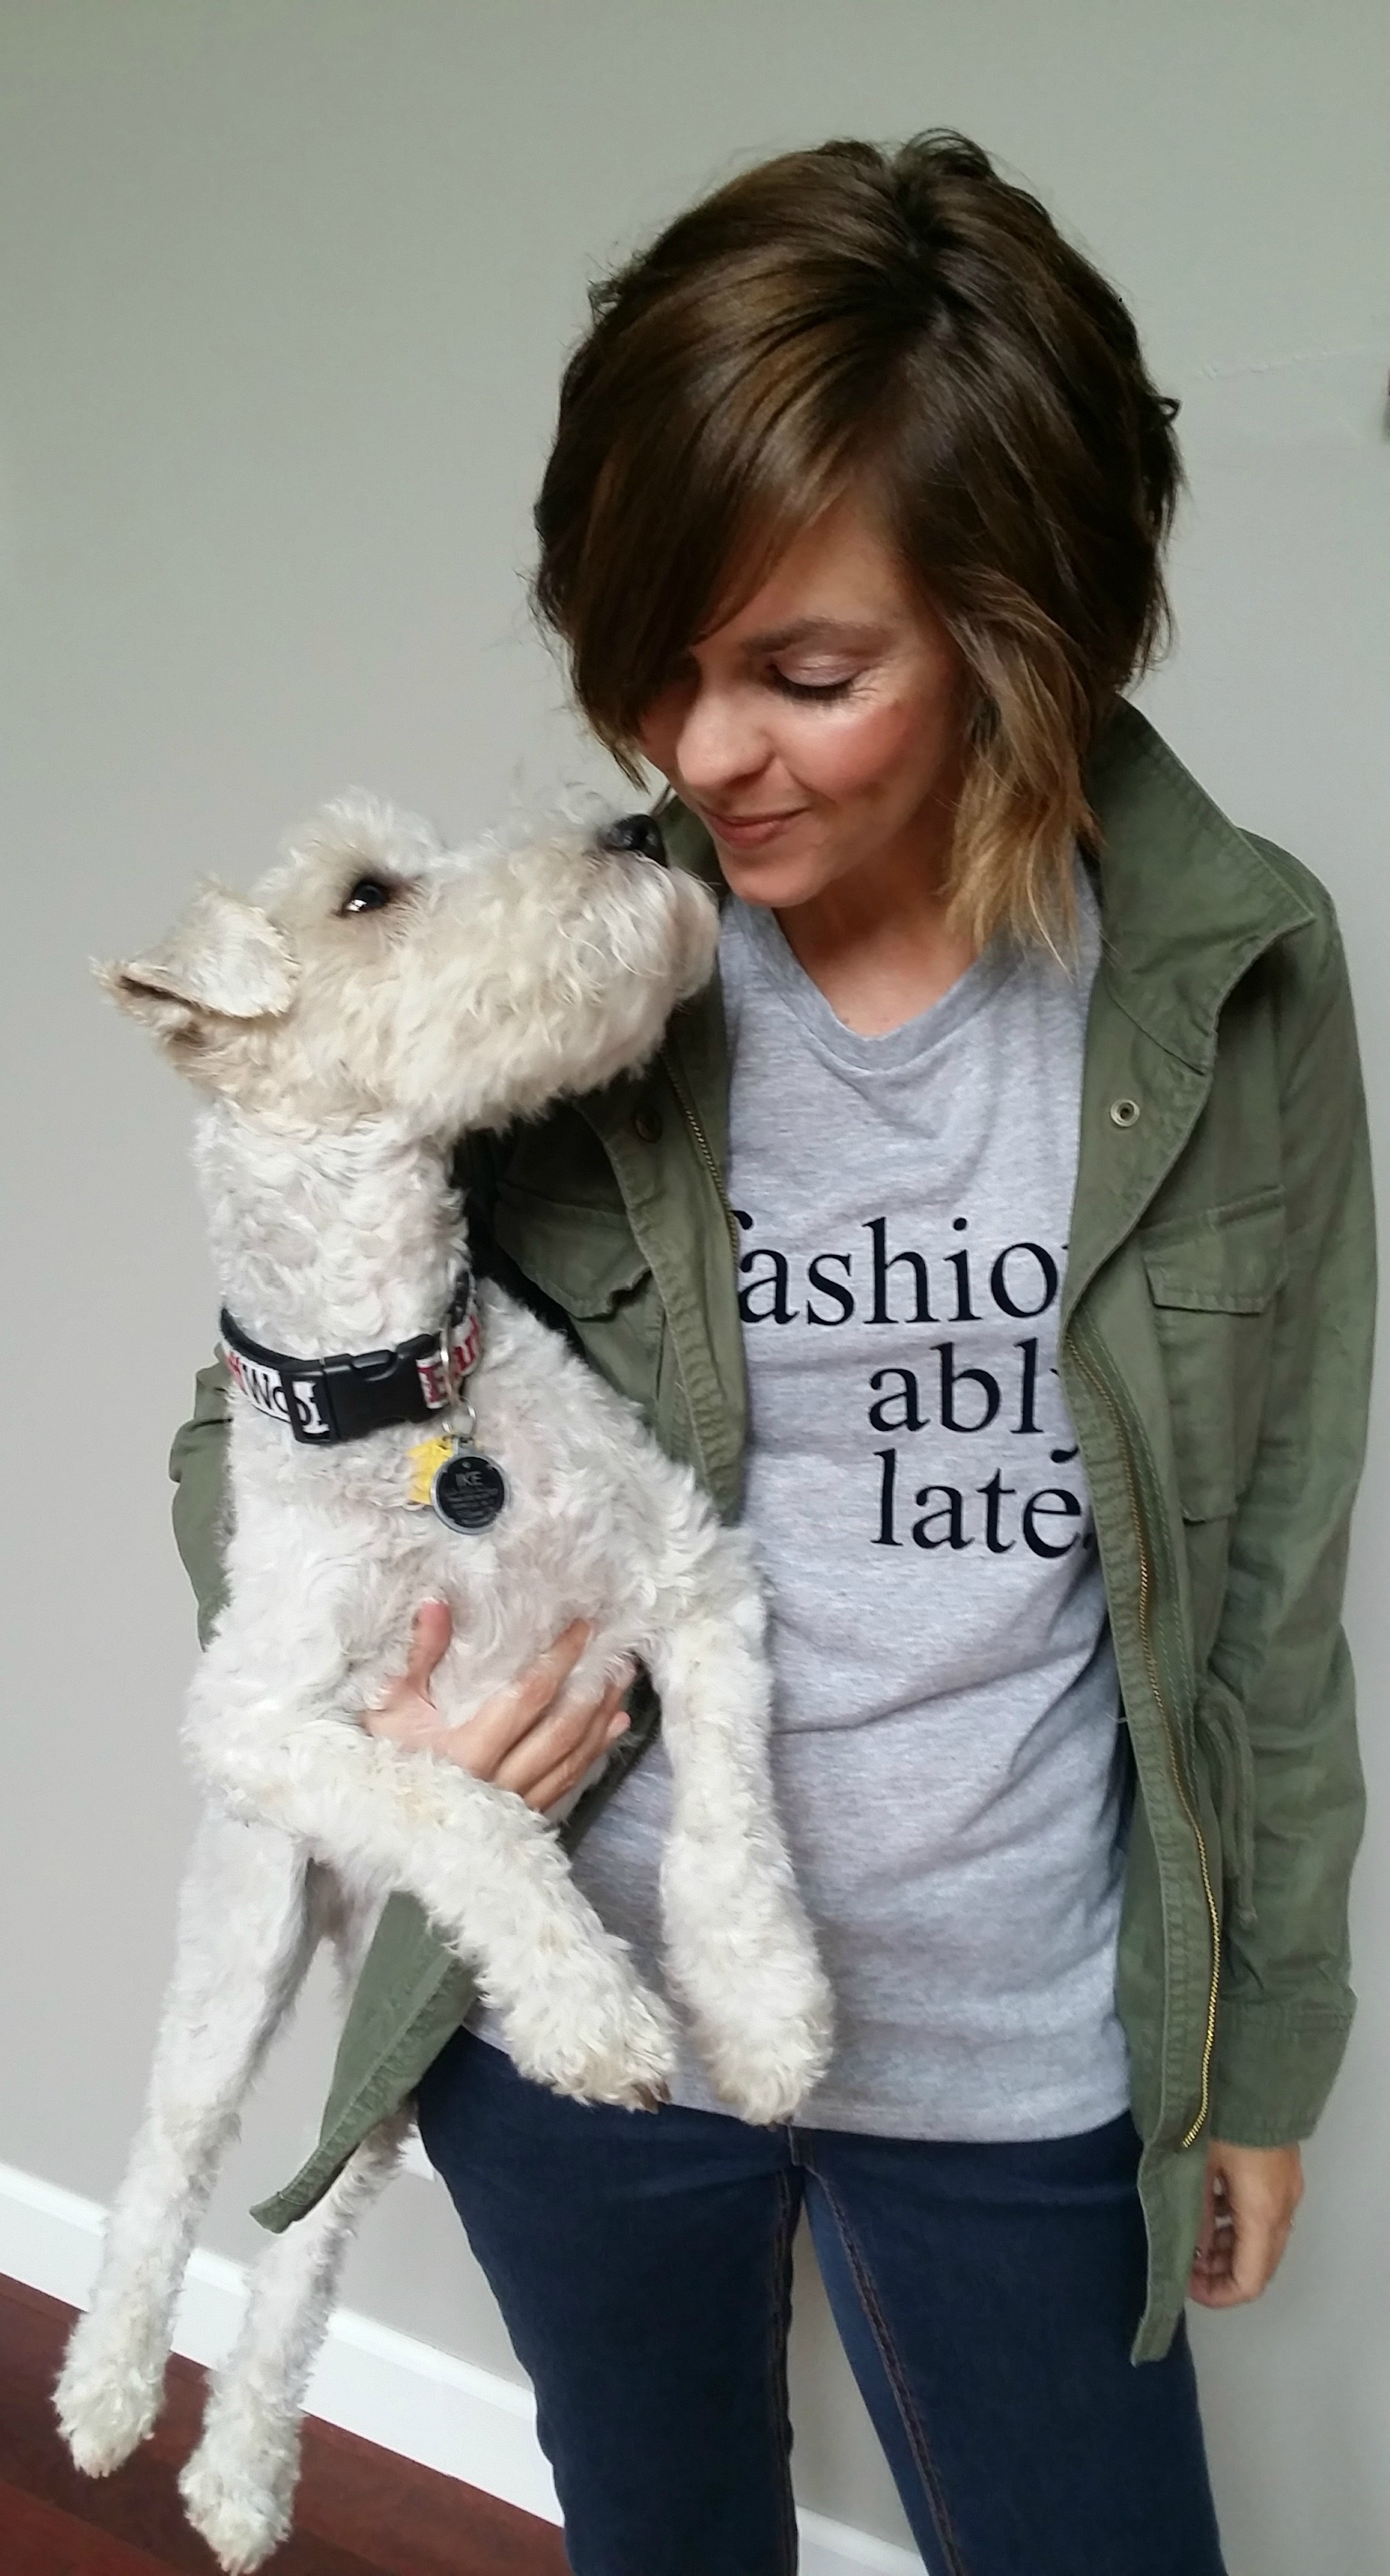 Design a shirt using Silhouette Portrait {Fashionably Late tee}